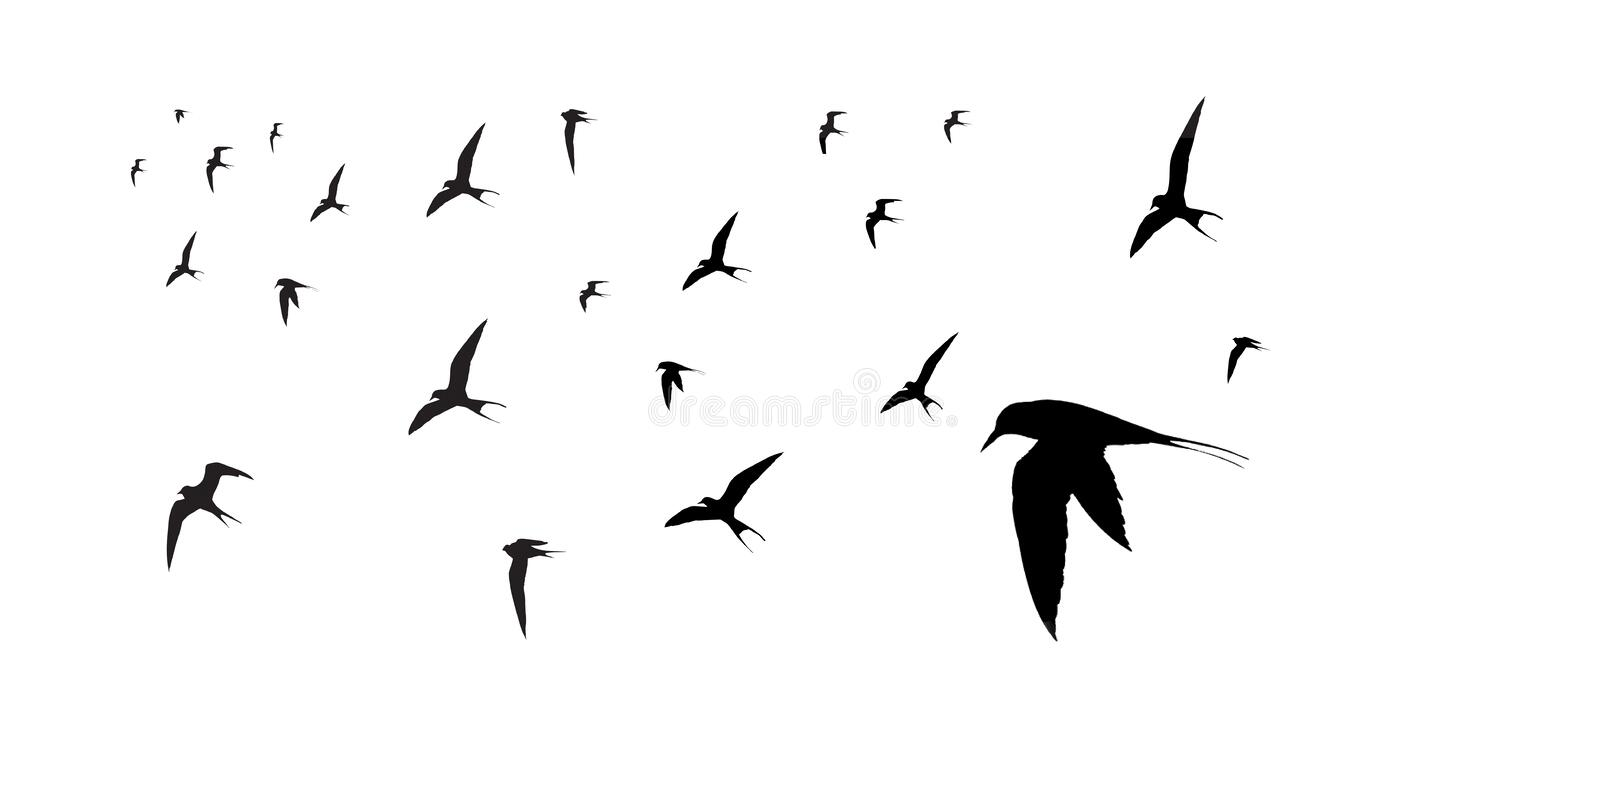 Grouping of Lesser Terns Silhouette stock photos